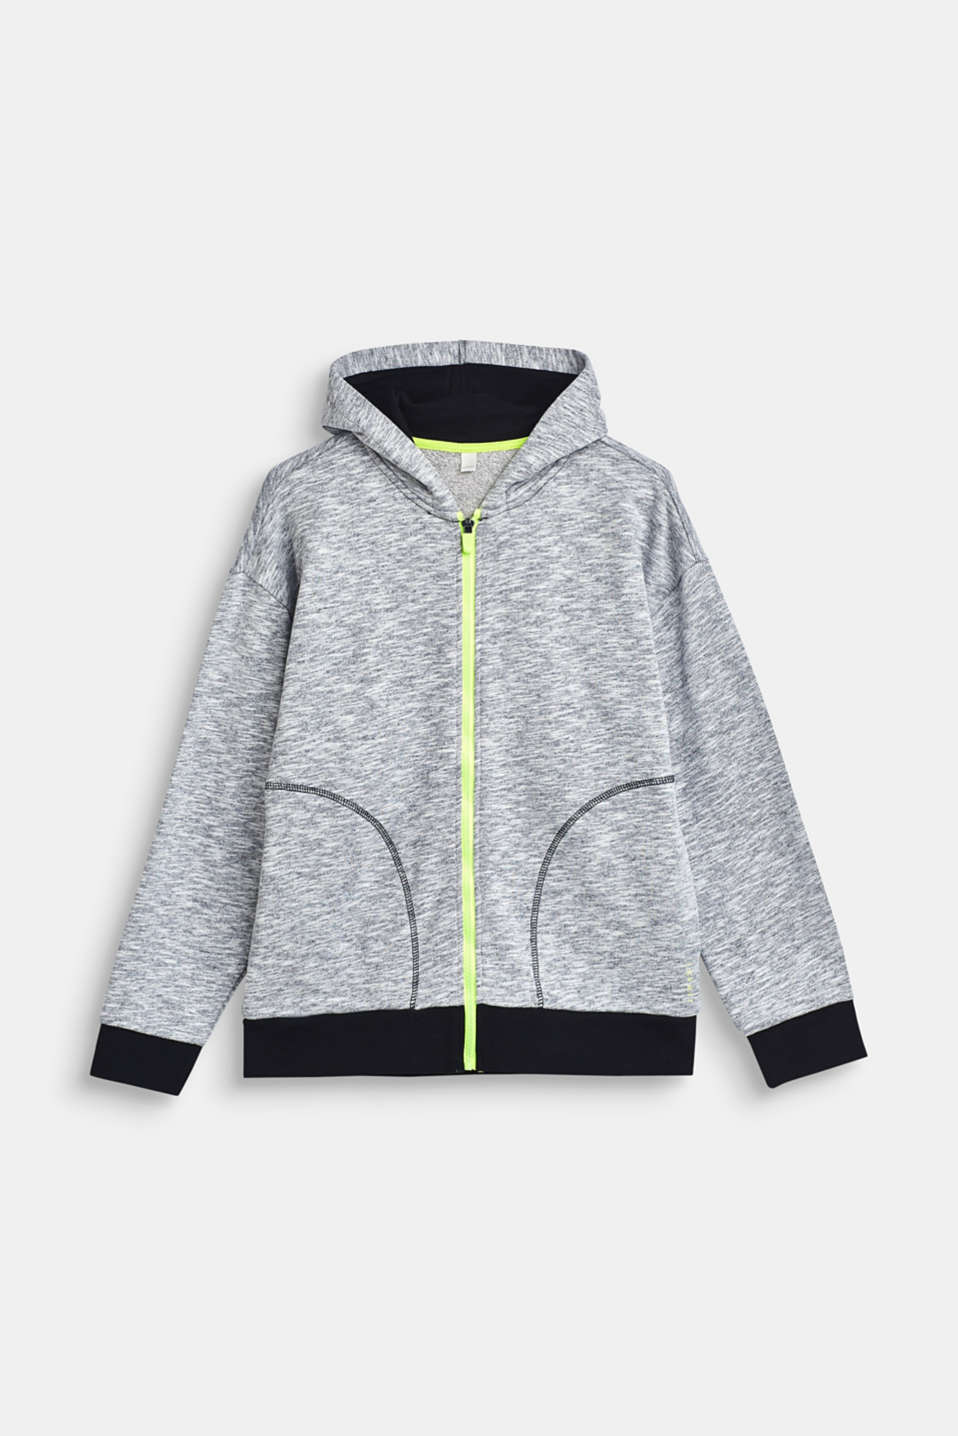 Esprit - Cardigan sweat-shirt chiné, 100 % coton